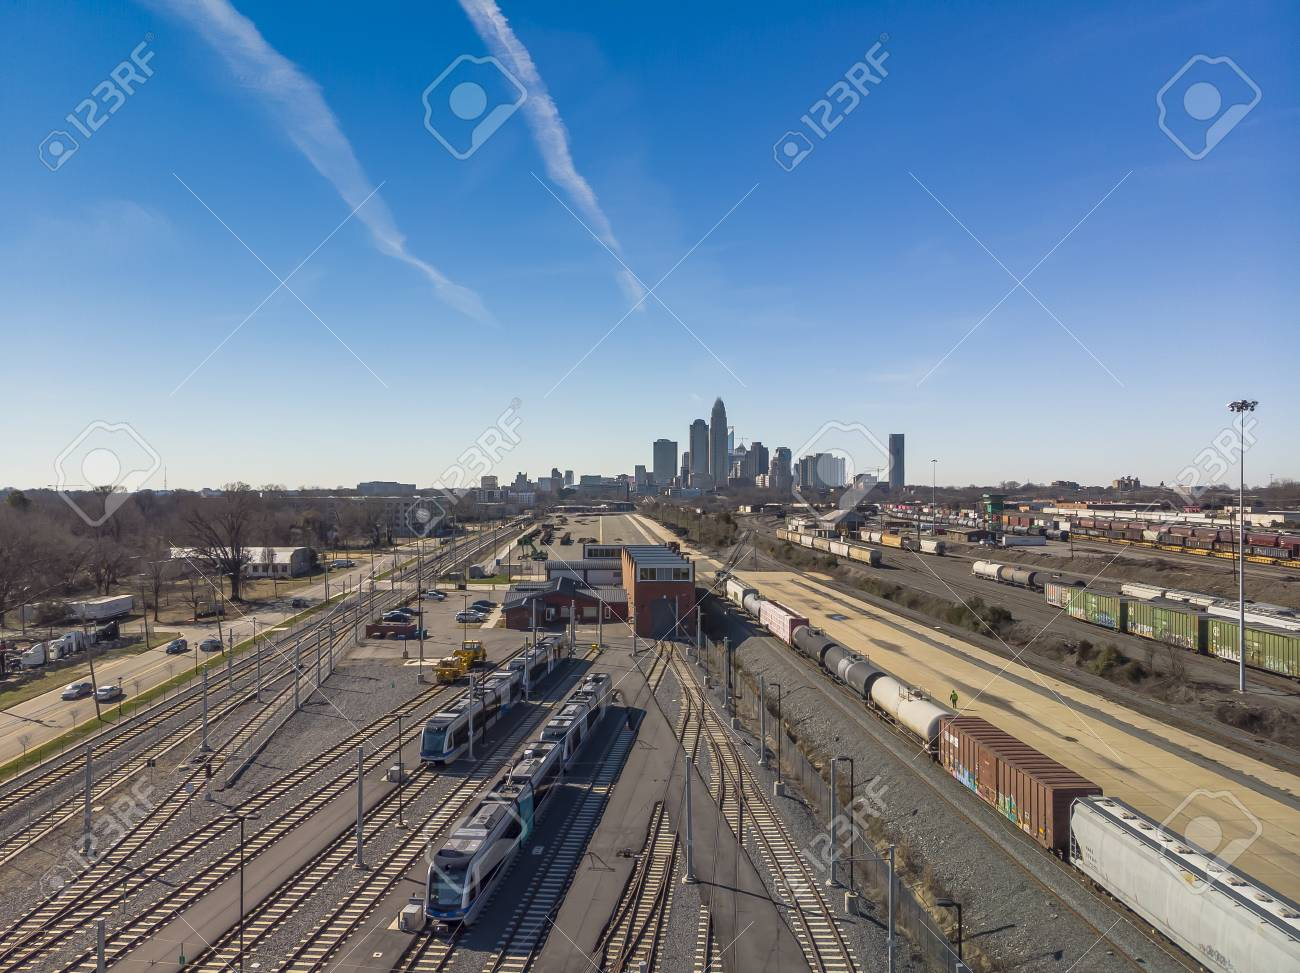 View Of A Train Yard With The City Of Charlotte NC In The 1300x973